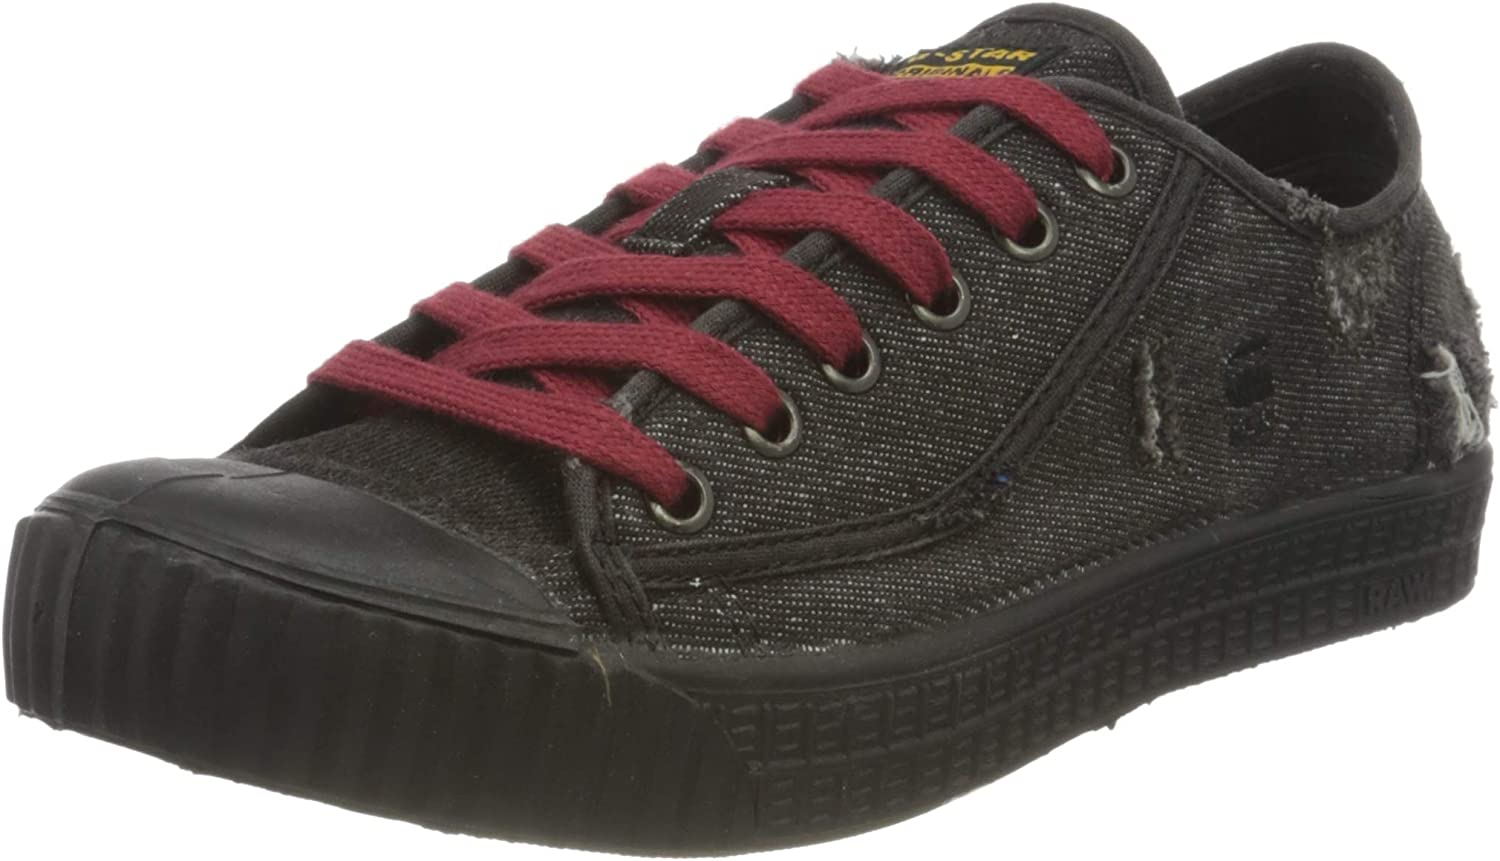 G-Star Raw Women's Gorgeous Sneakers Low-top favorite